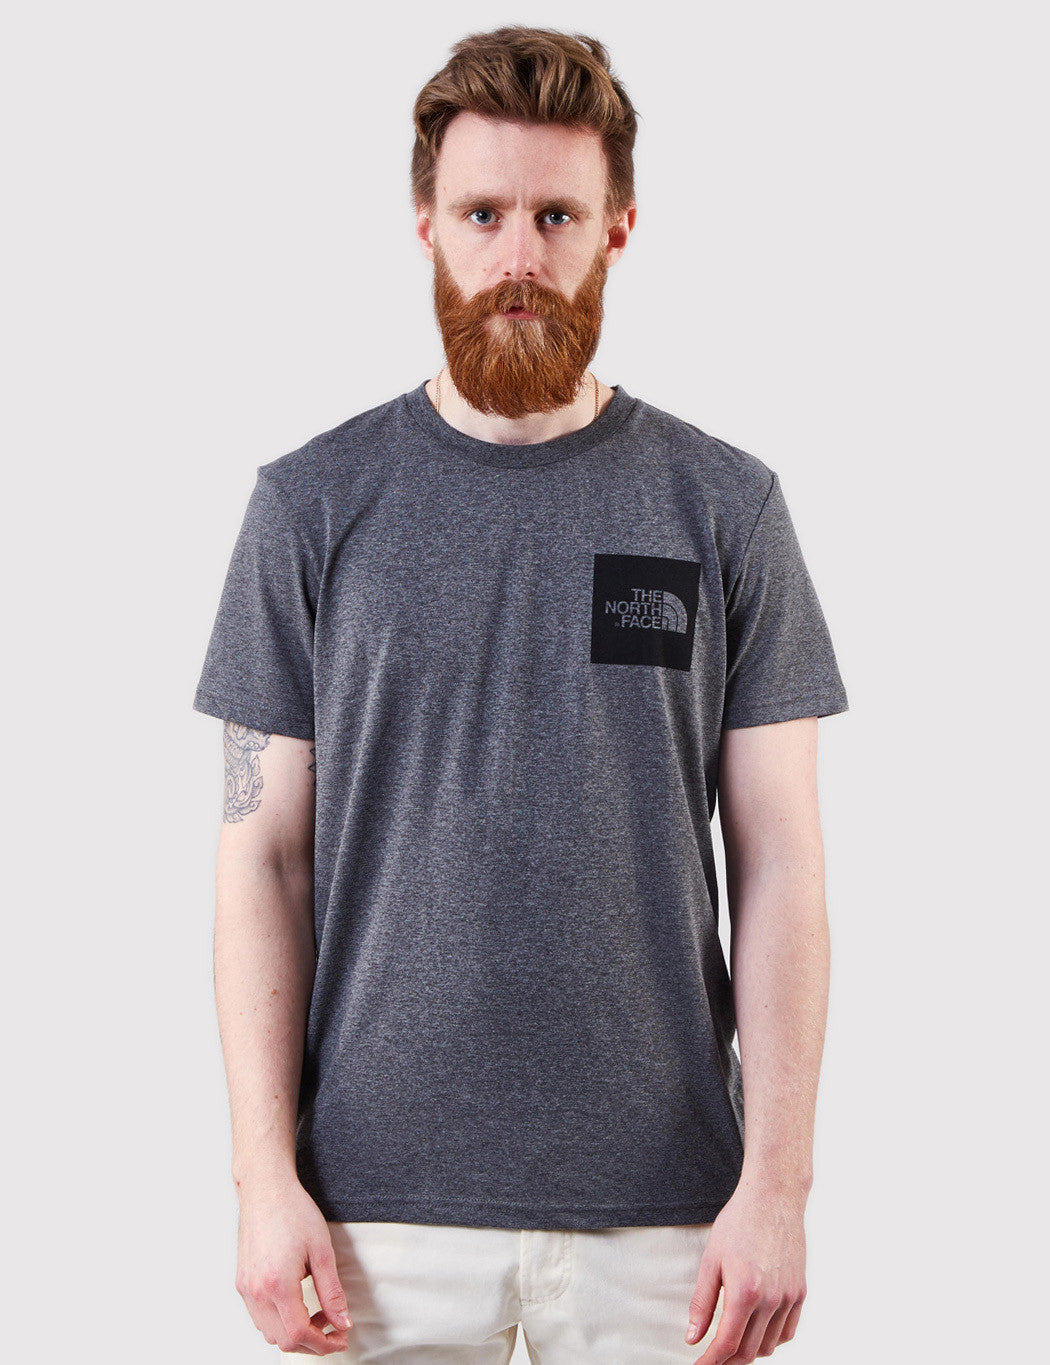 North Face Fine T-Shirt - Medium Grey Heather